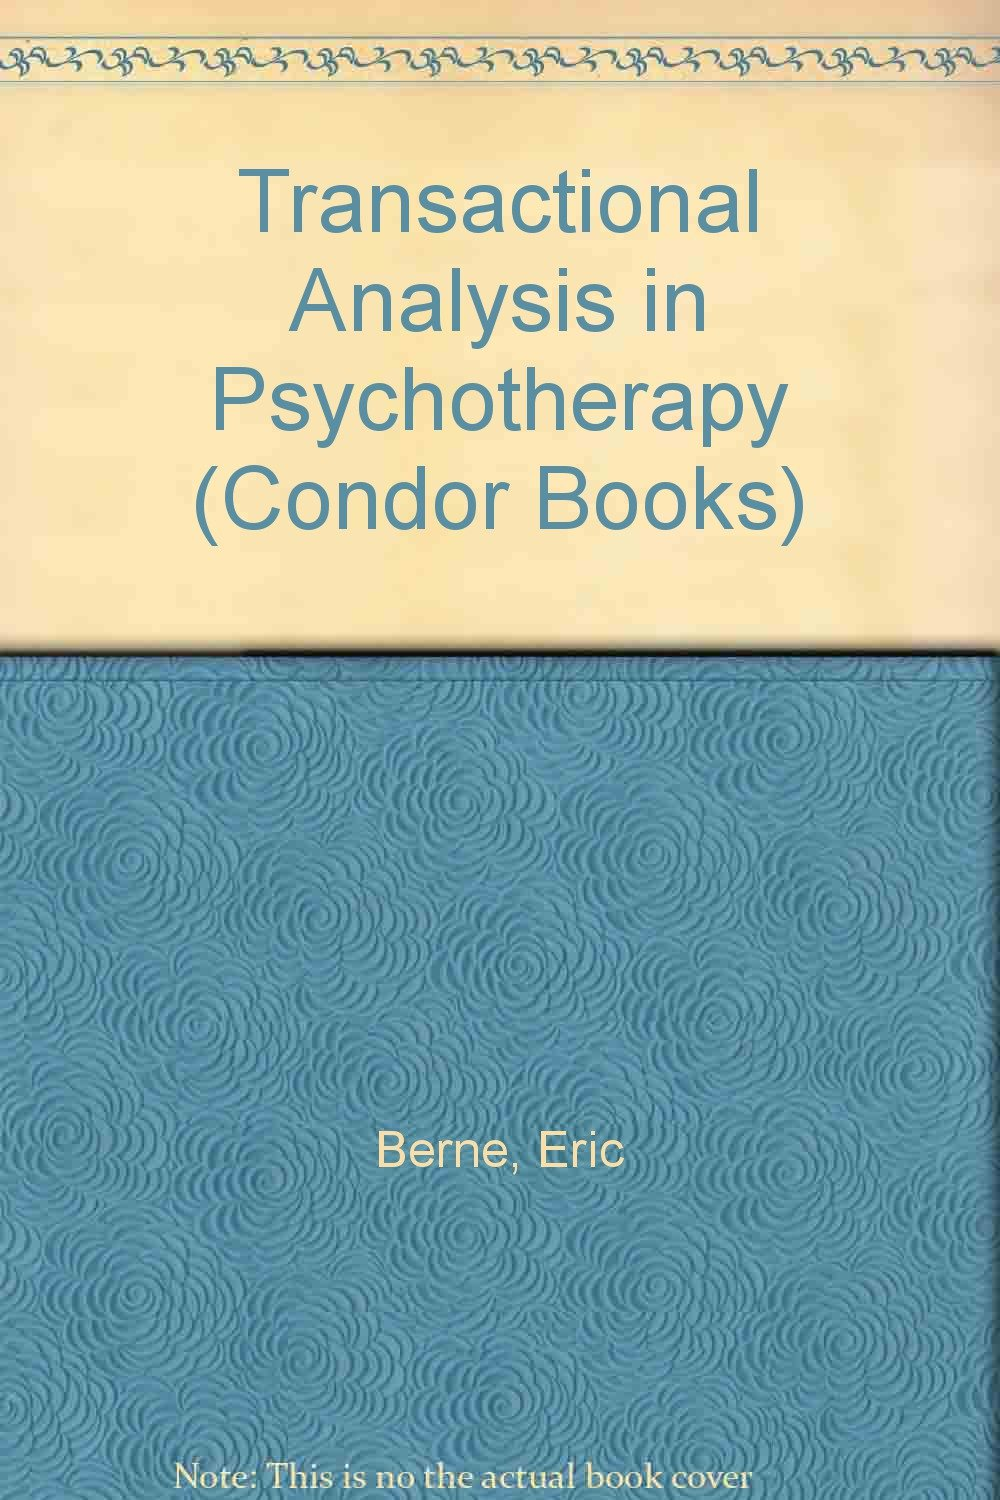 Transactional Analysis in Psychotherapy (Condor Books): E. Berne:  9780285647770: Amazon.com: Books